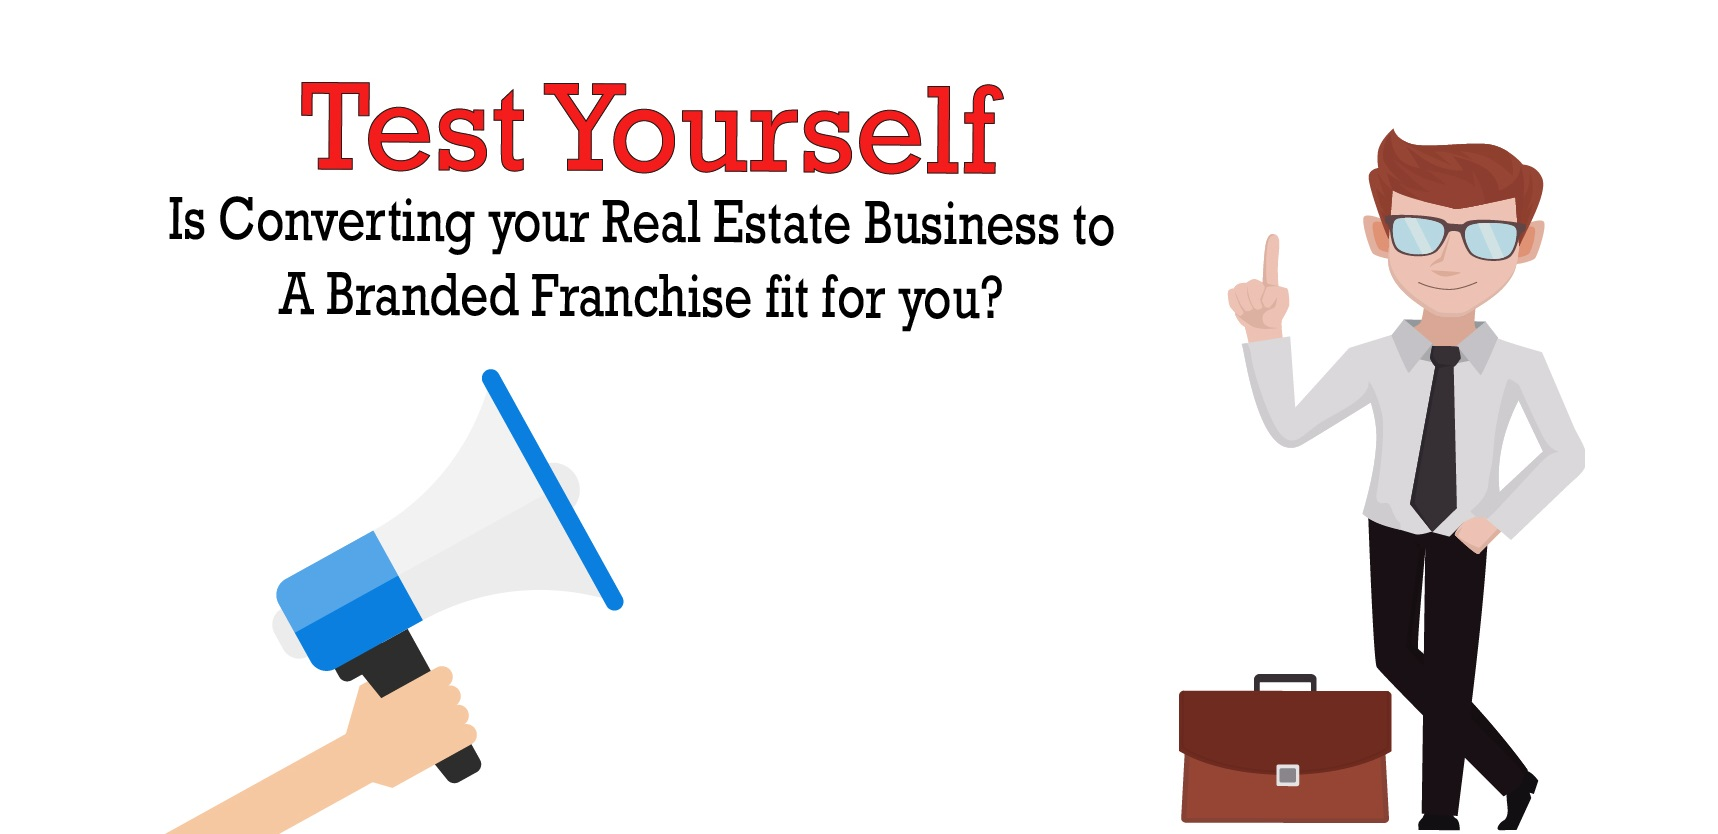 Test yourself is converting to a Banded real estate franchise fit for me